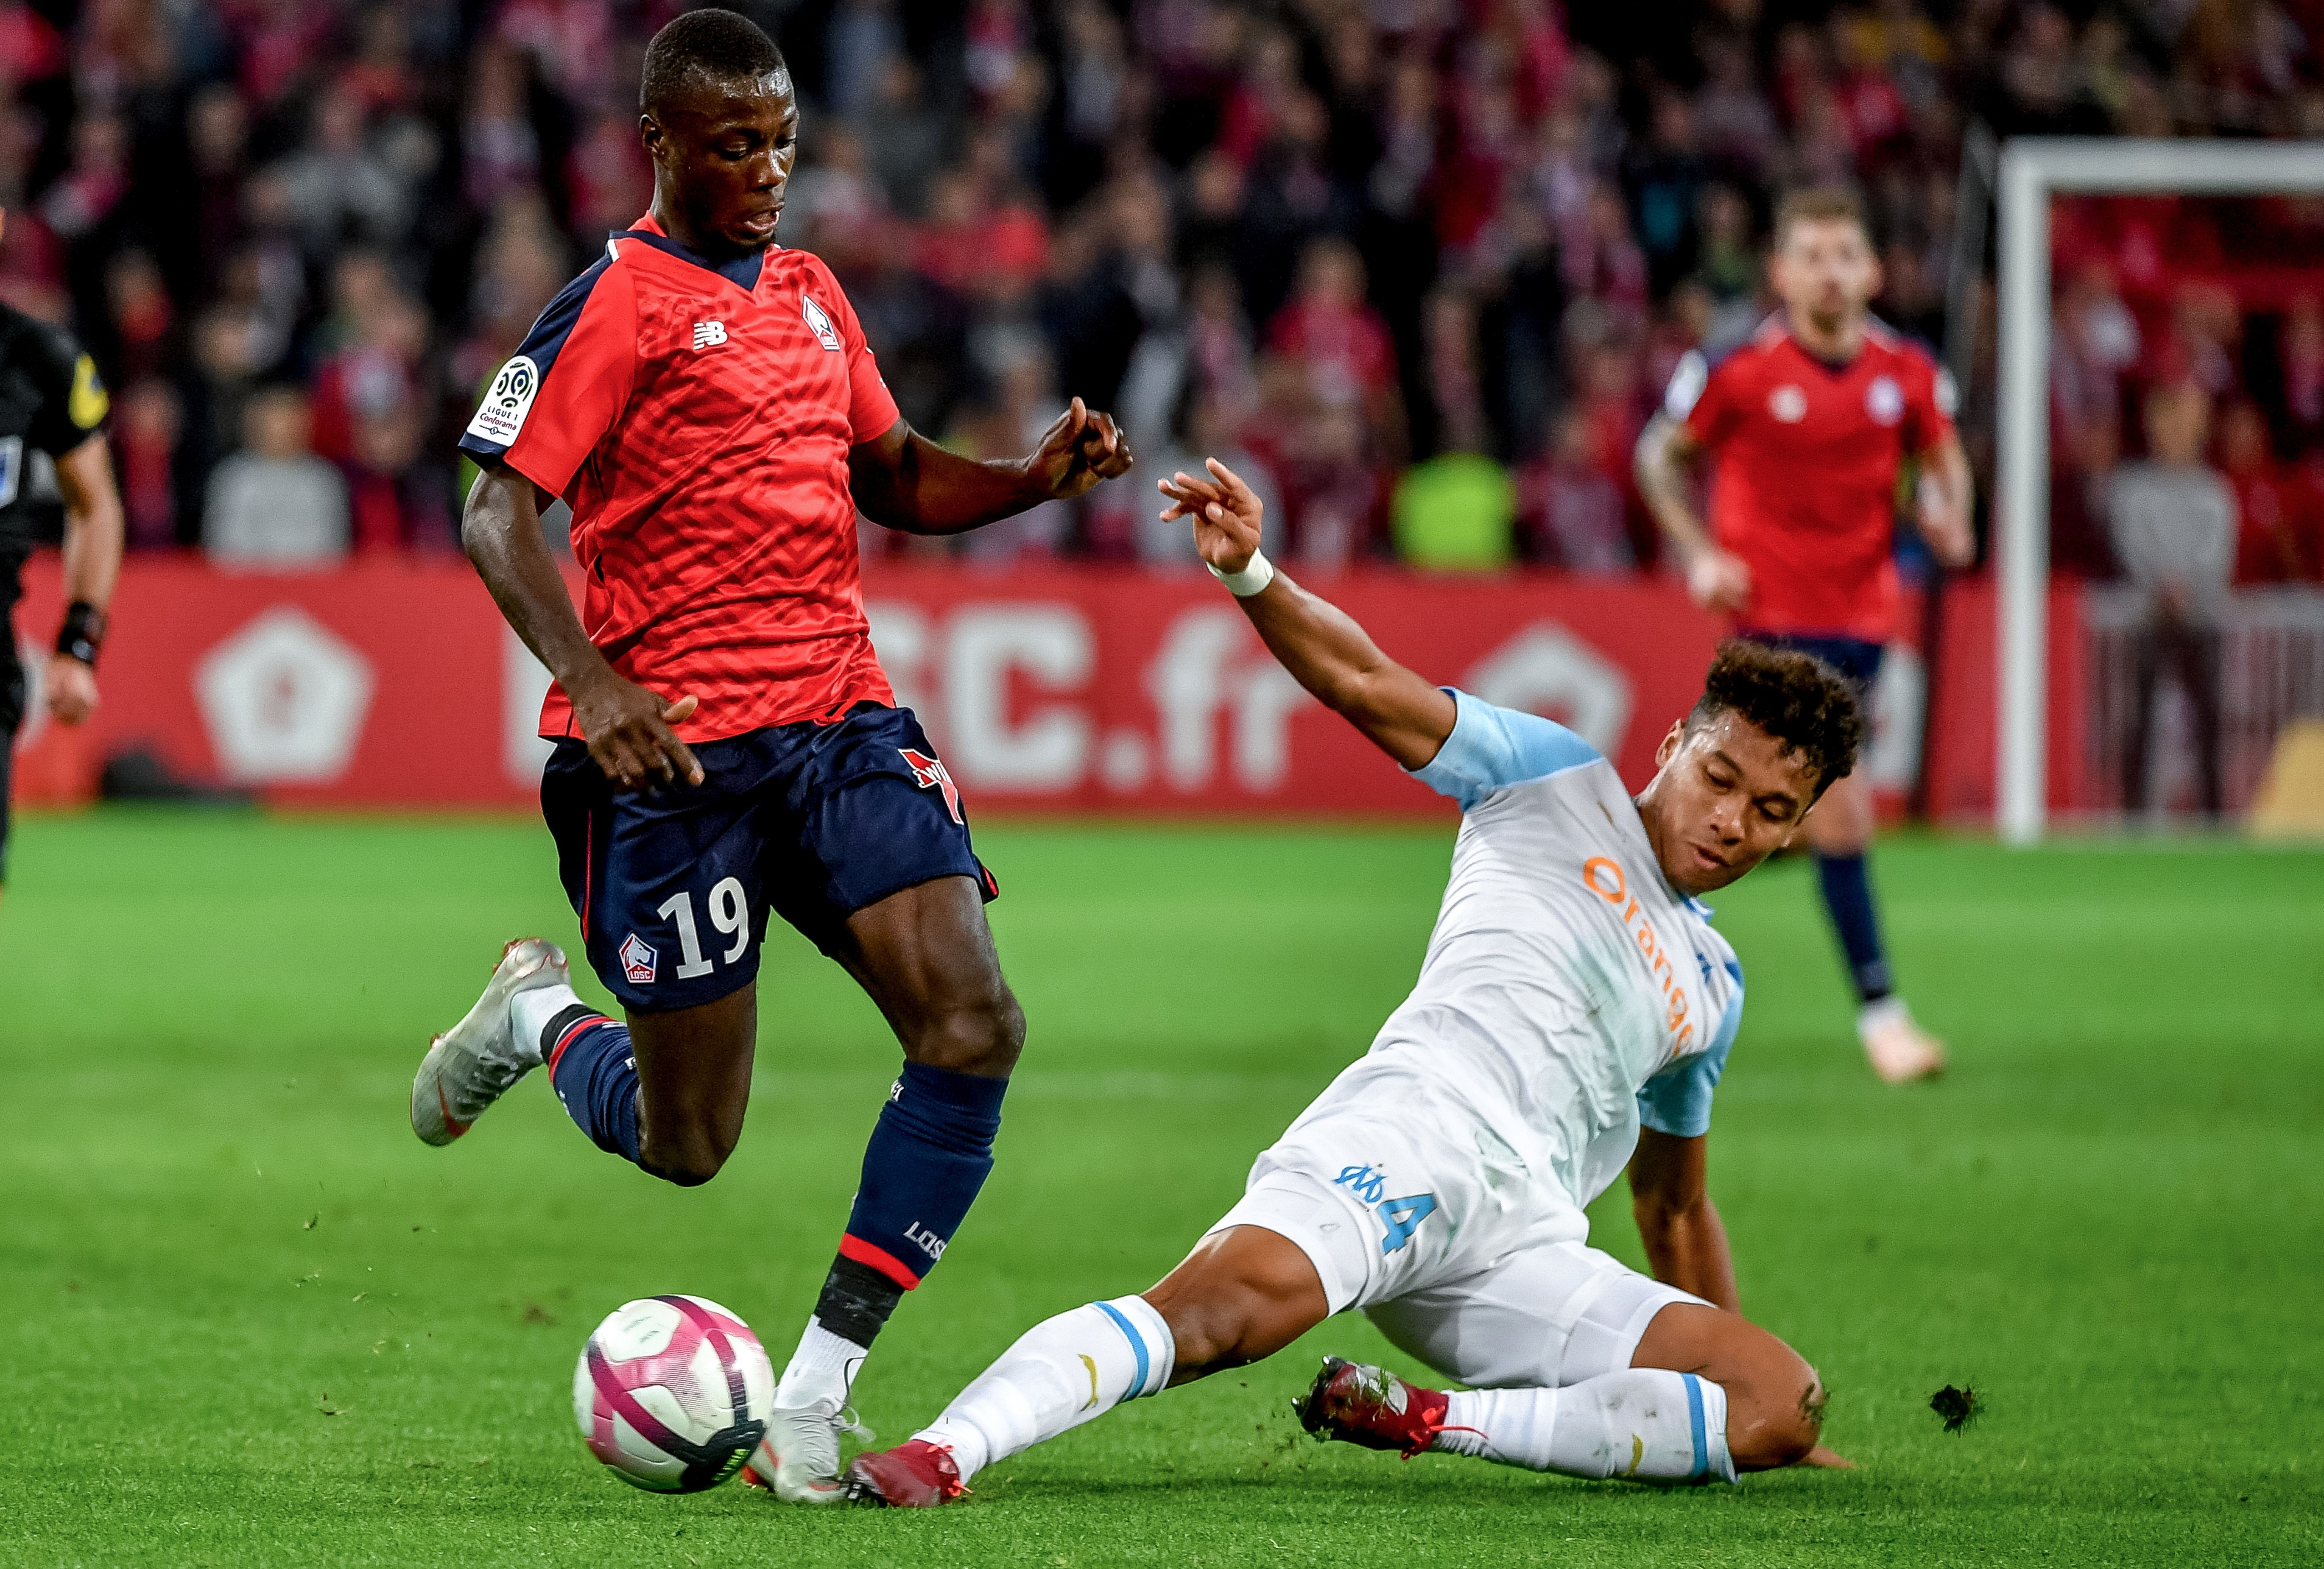 Marseille's French midfielder Boubacar Kamara (R) could be on the move in January (Photo by PHILIPPE HUGUEN/AFP/Getty Images)